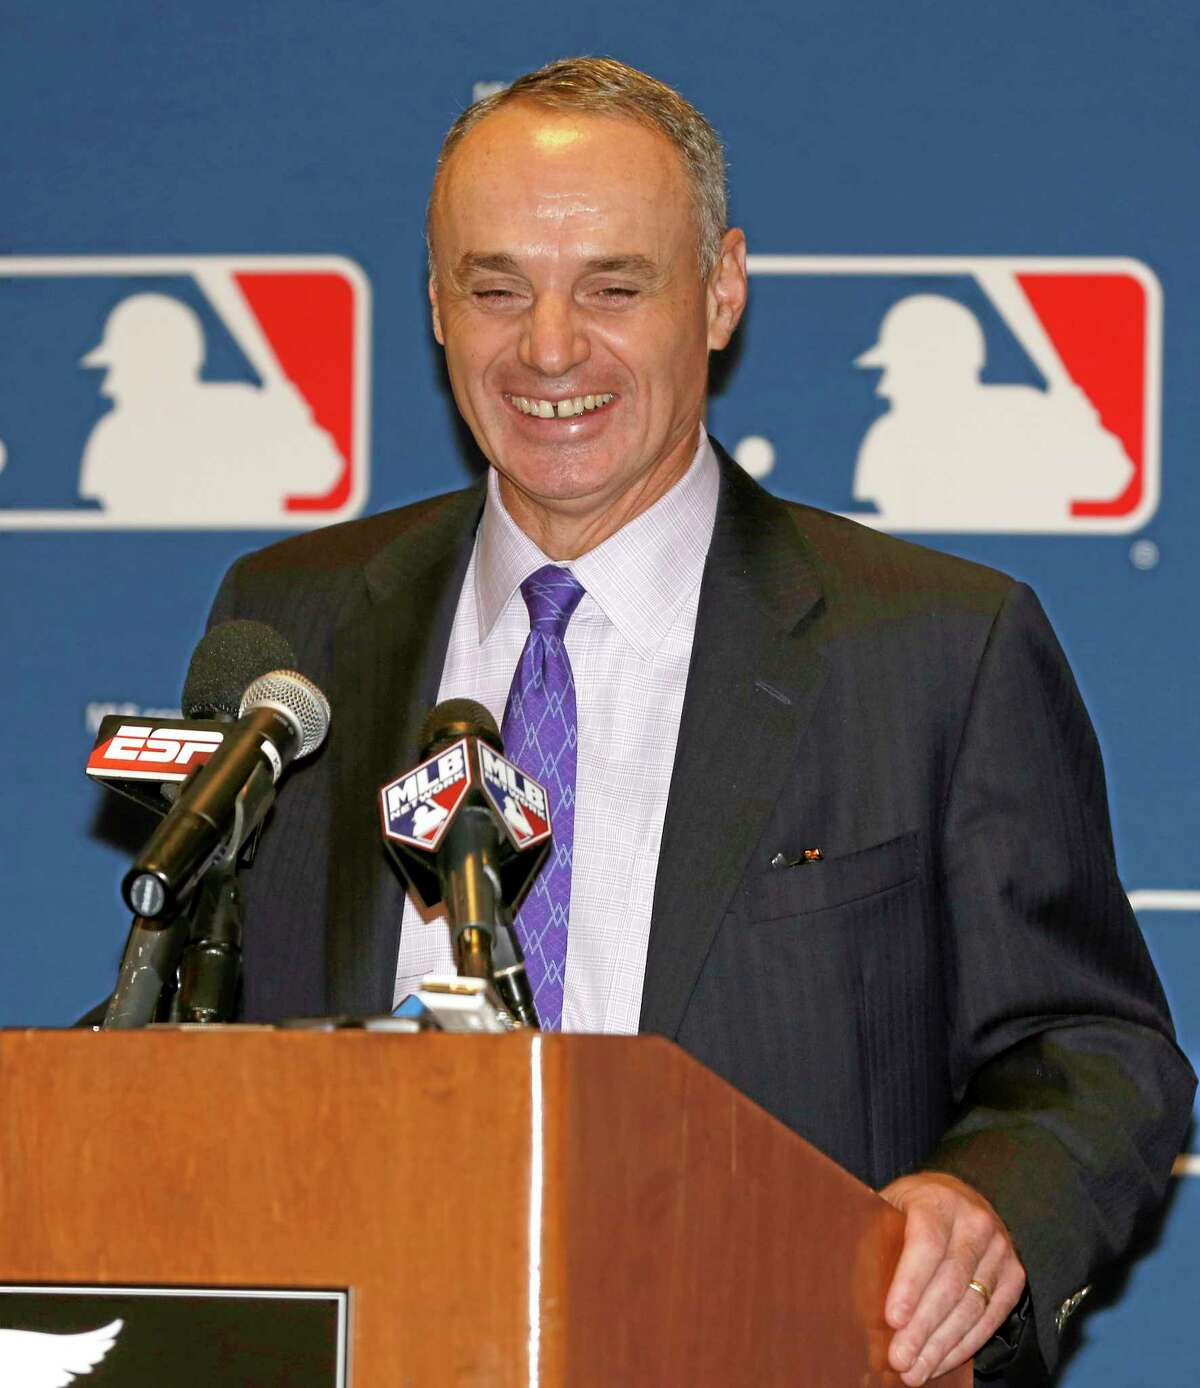 Major League Baseball Chief Operating Officer Rob Manfred has been elected the 10th commissioner of MLB.